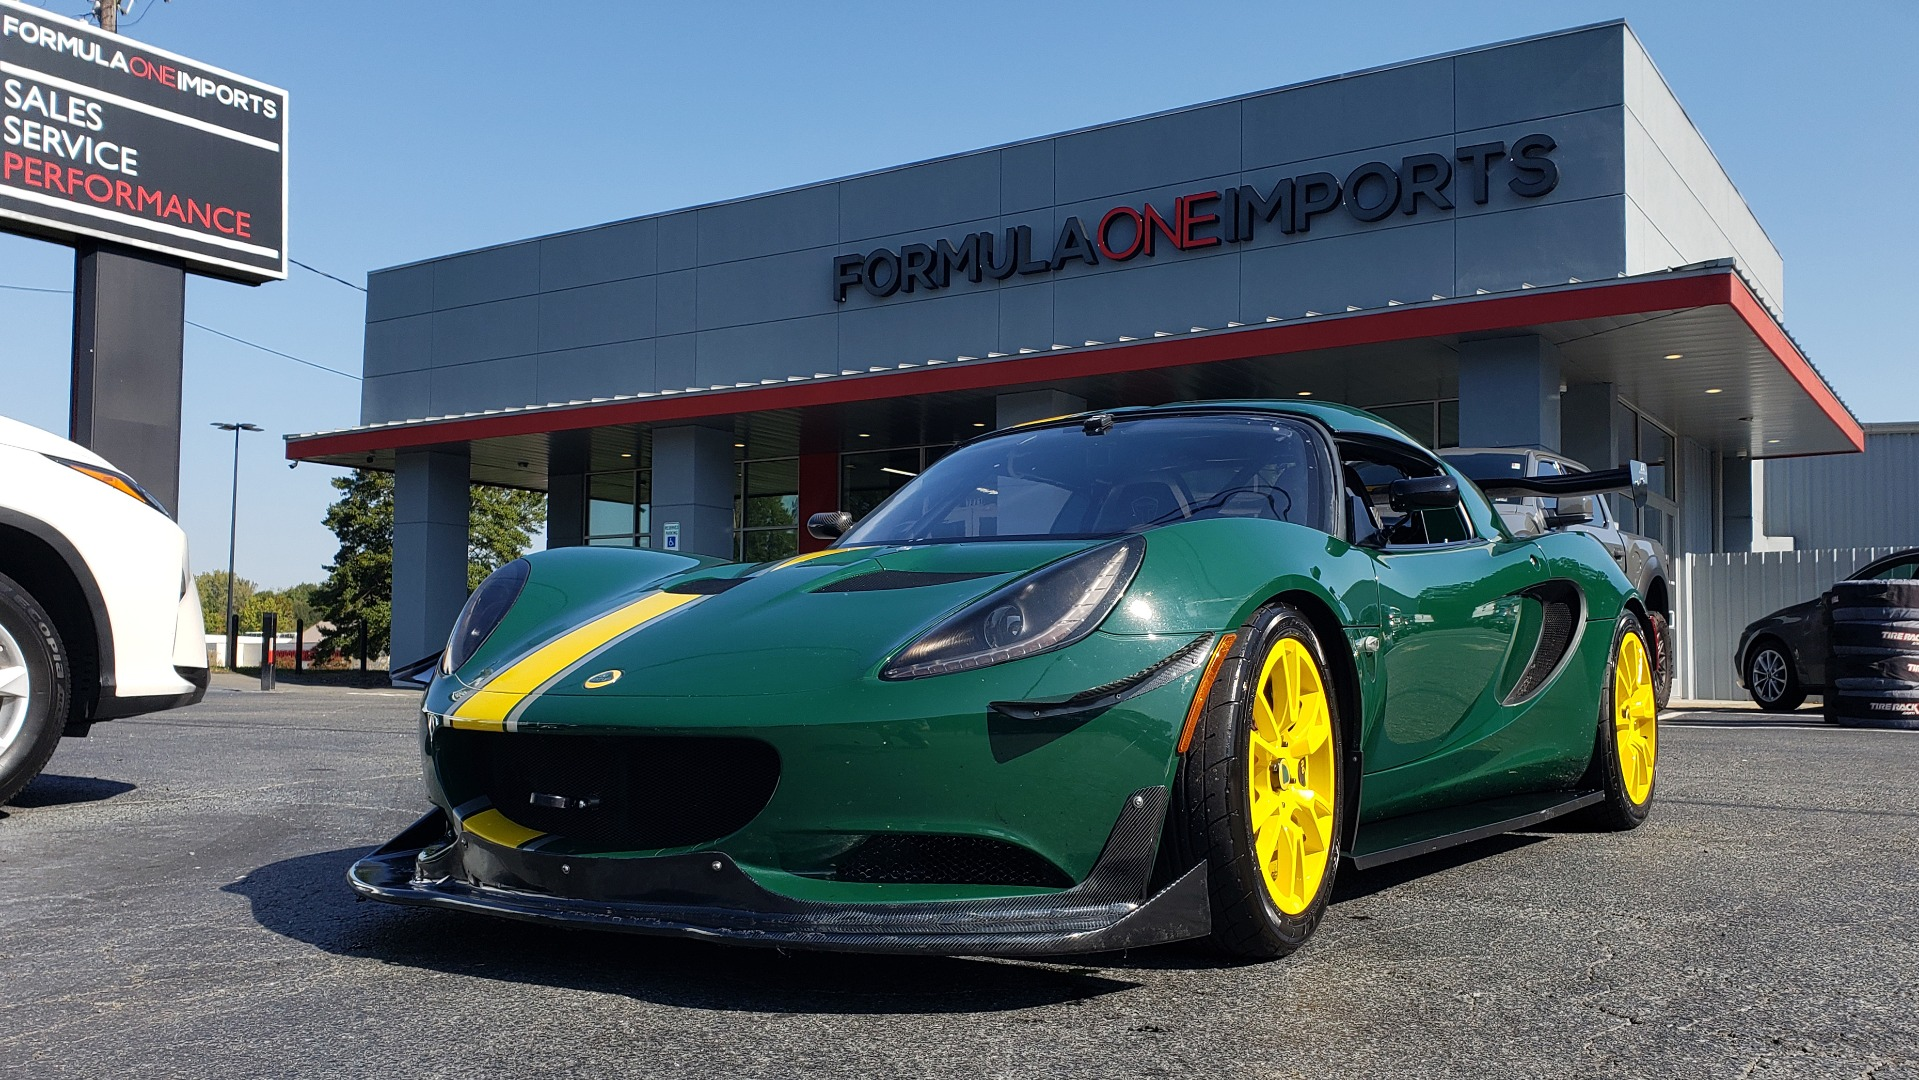 Used 2011 Lotus ELISE SC RACE CAR / UP TO DATE / READY TO RACE W/3-SETS WHEELS & TIRES for sale $51,999 at Formula Imports in Charlotte NC 28227 1